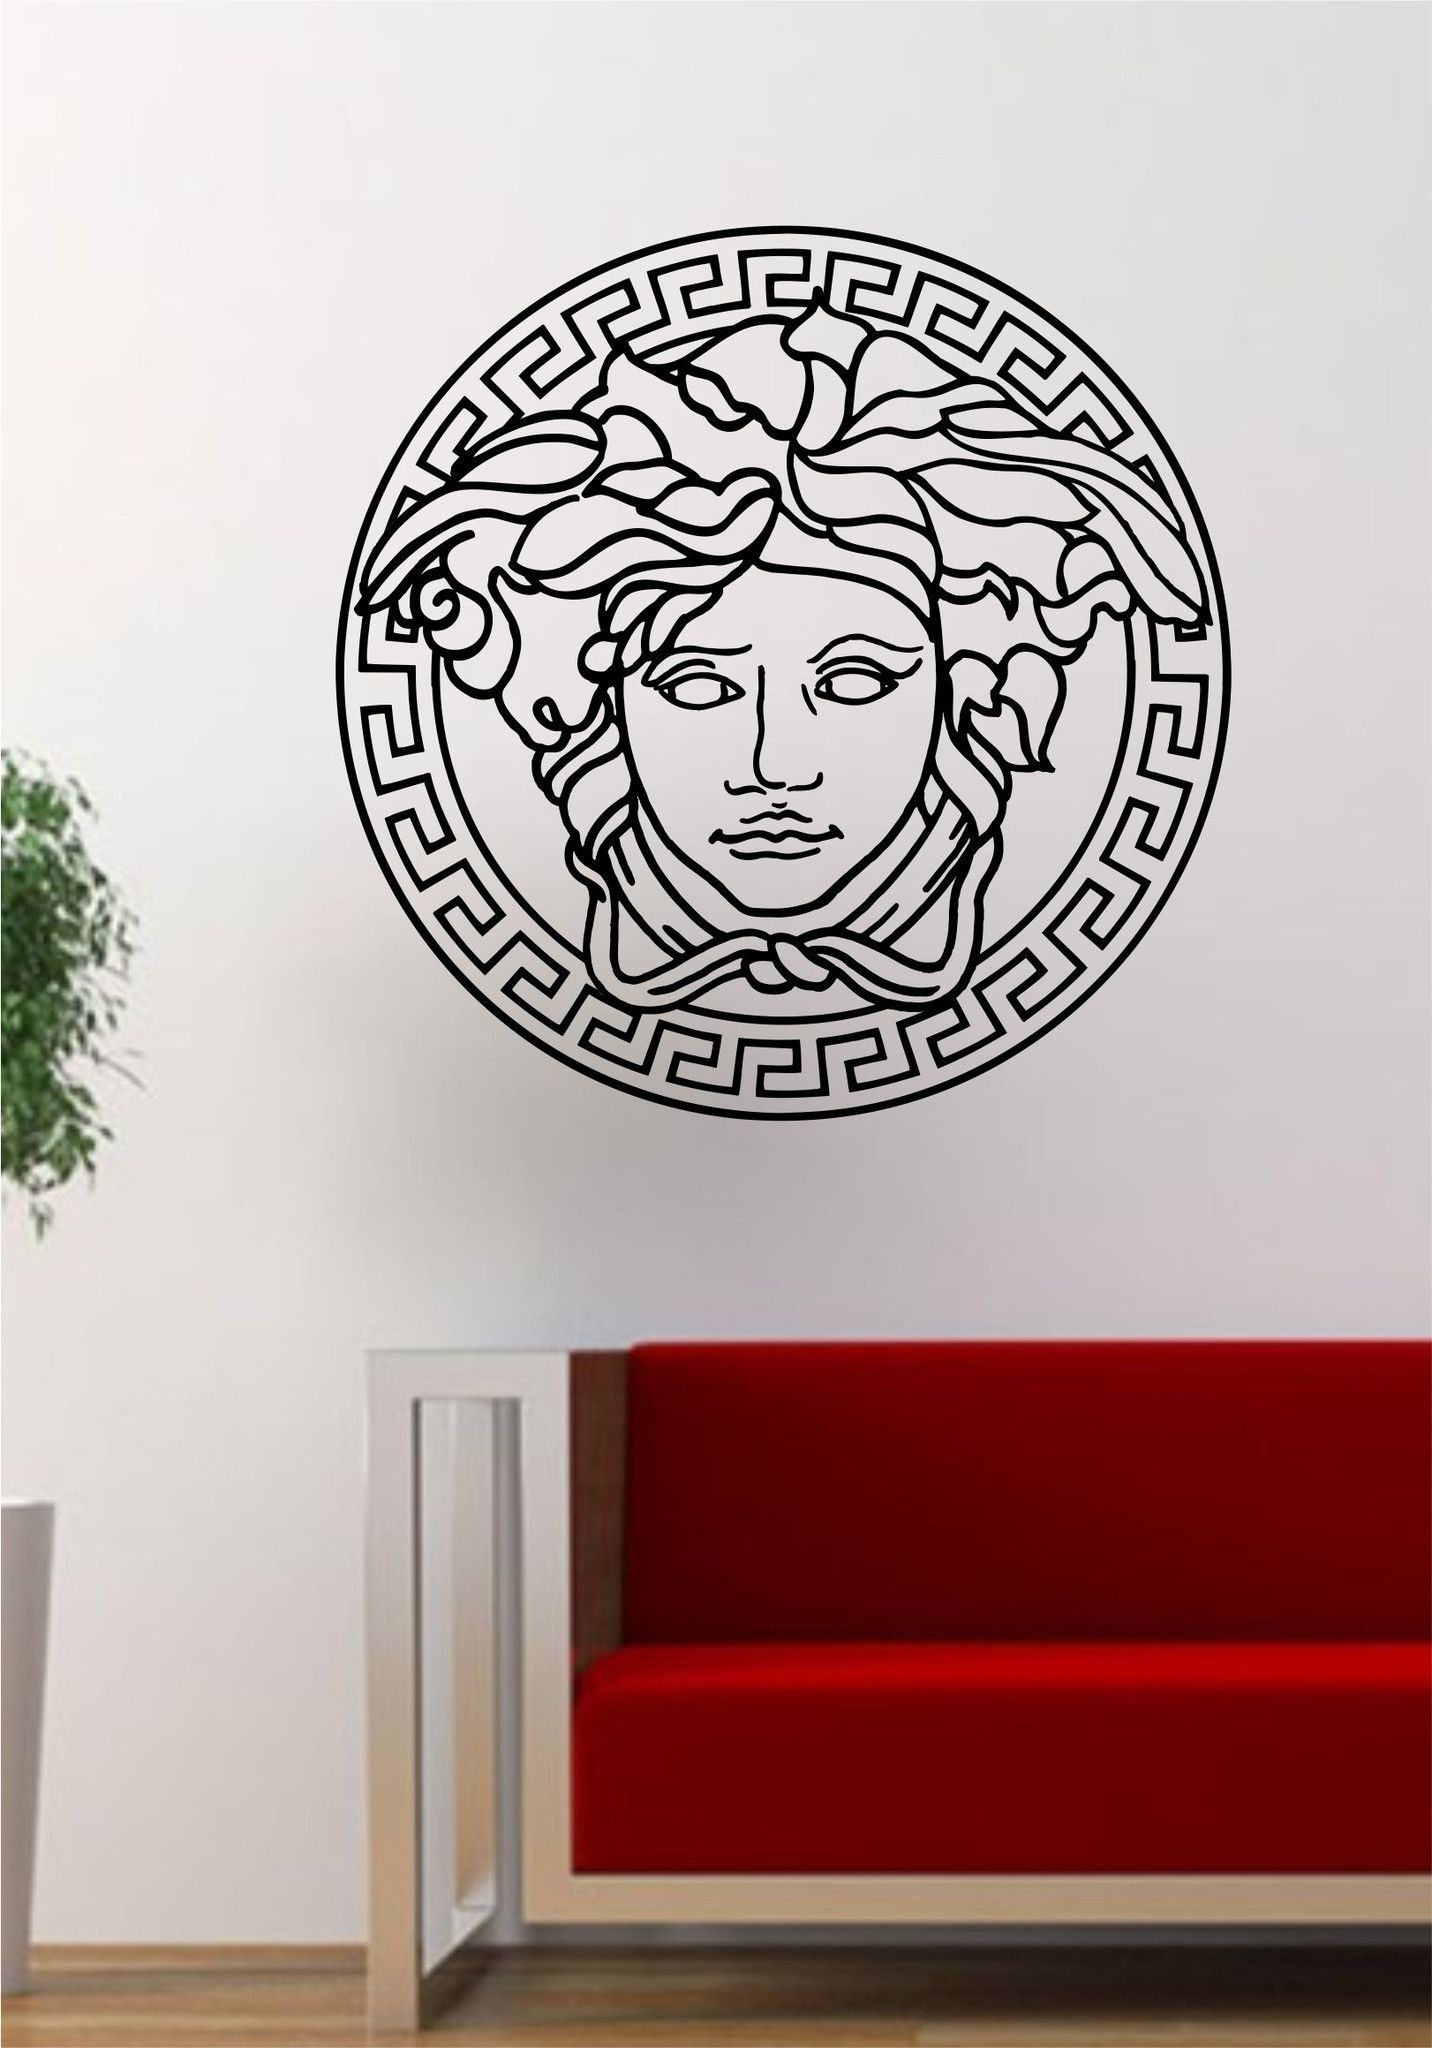 versace logo medusa decal sticker wall vinyl decor art on wall logo decal id=55296